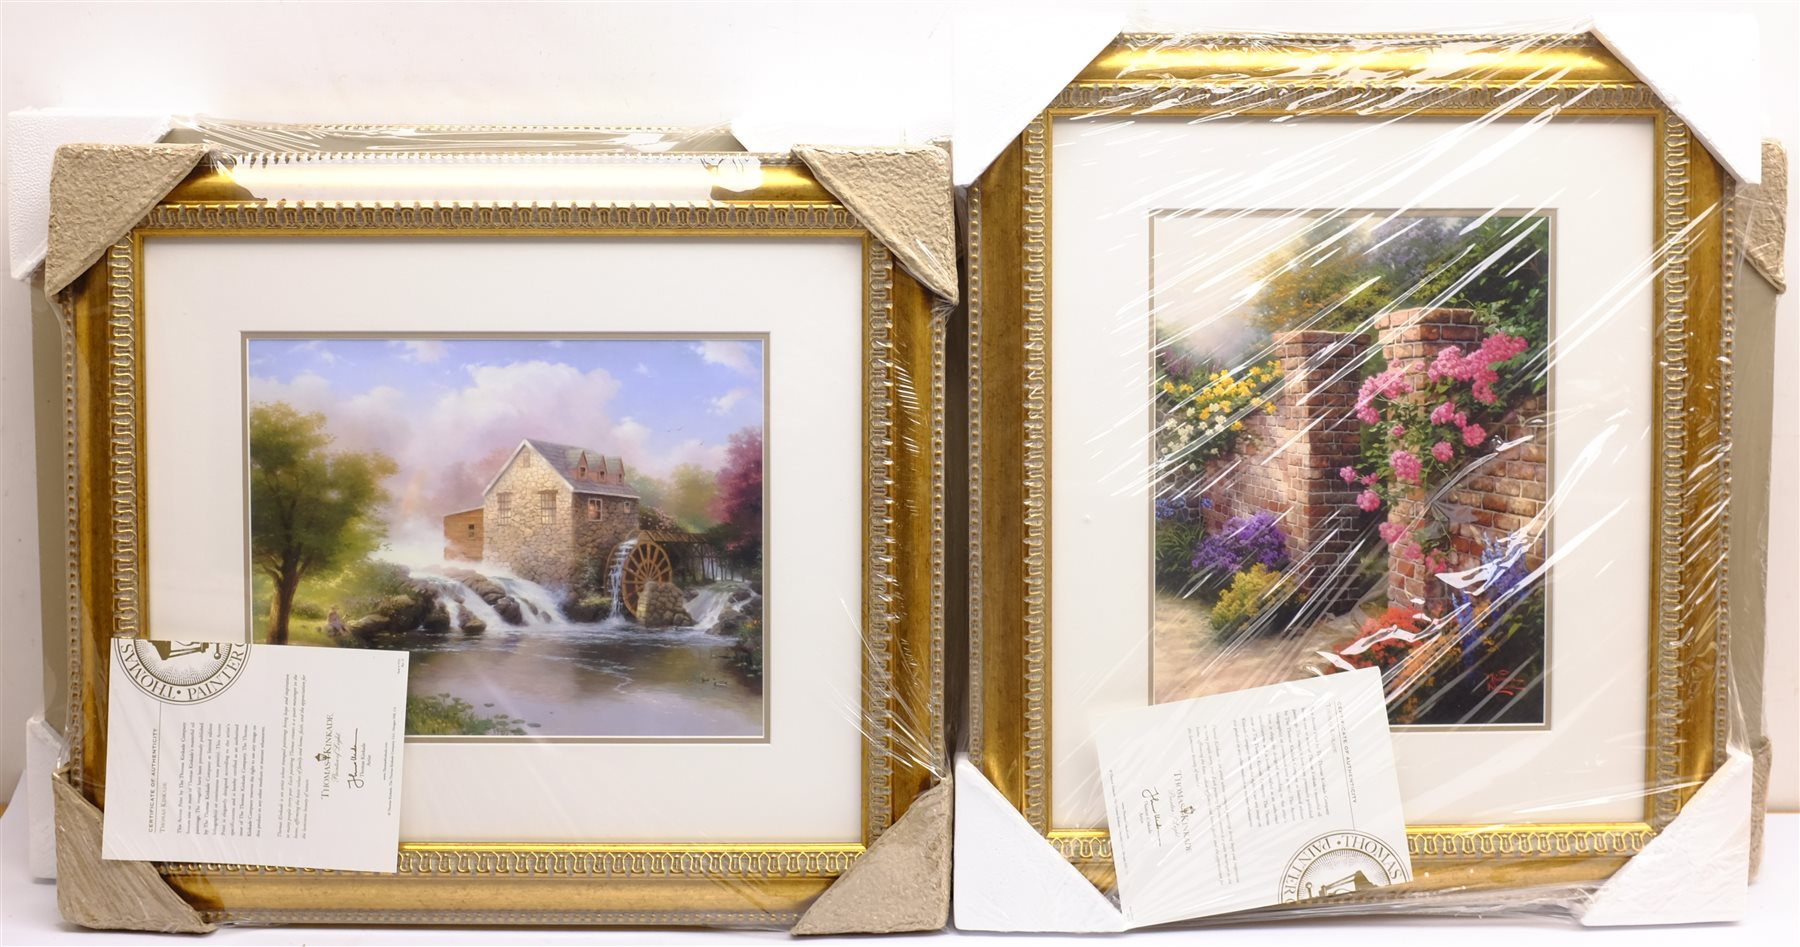 After Thomas Kinkade (American 1958-2012): Cottage and River scenes, set of six colour prints 28cm x - Image 3 of 4